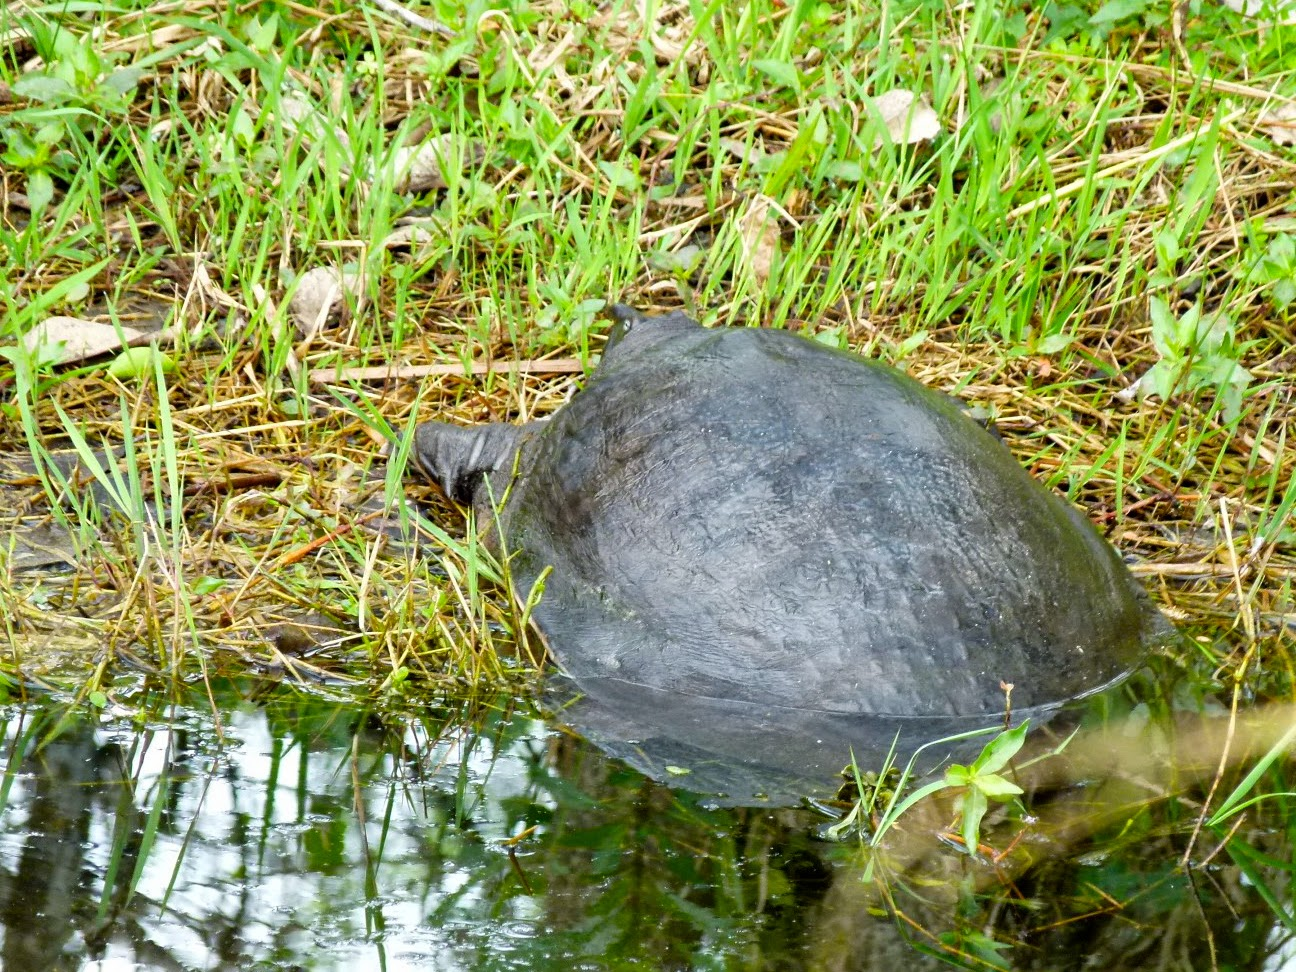 Snout nosed turtle in Shark Valley, Everglades National Park